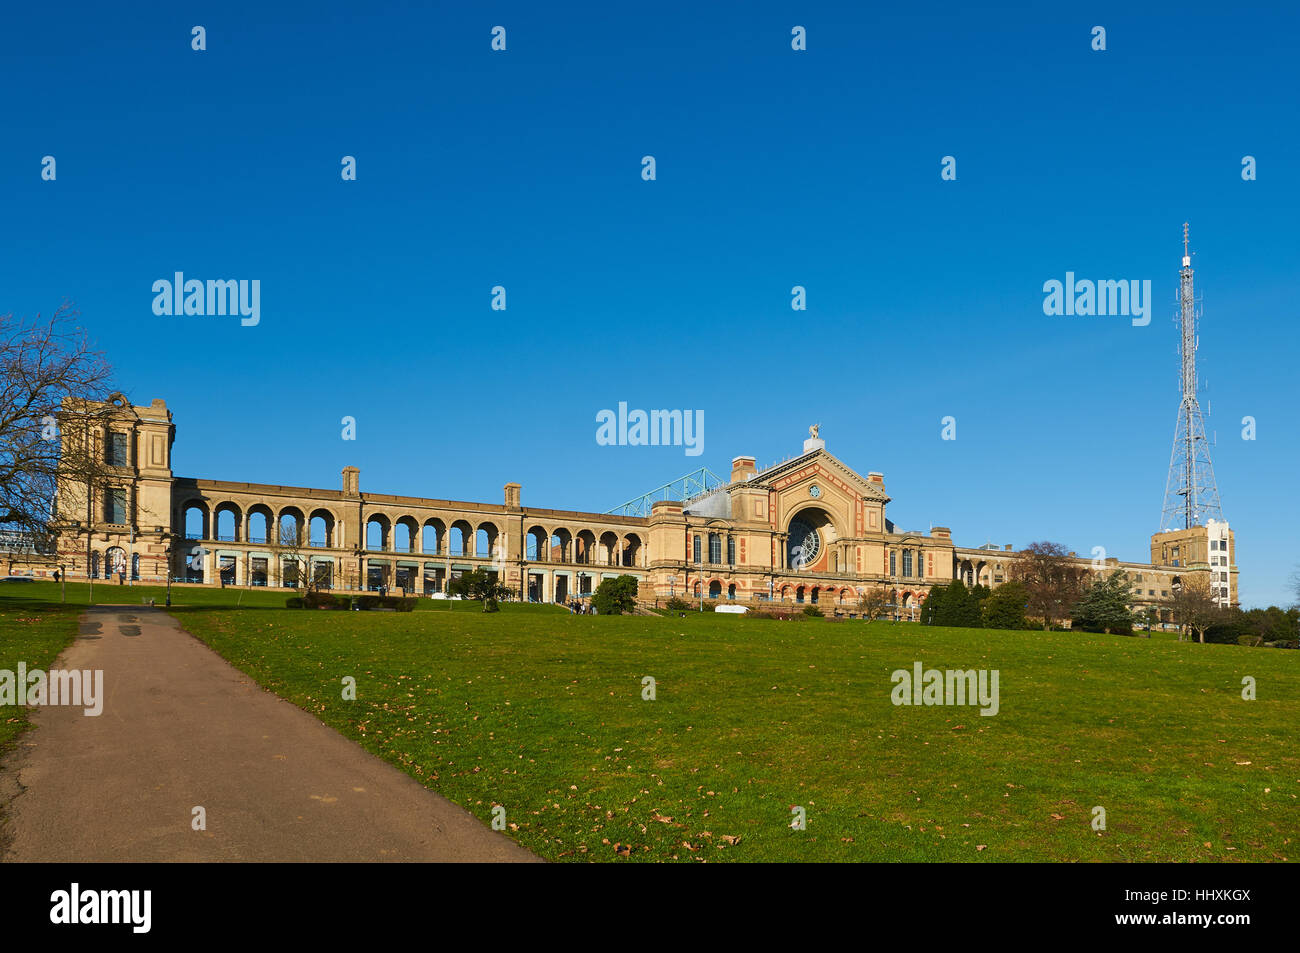 Alexandra Palace in Alexandra Park, North London UK - Stock Image